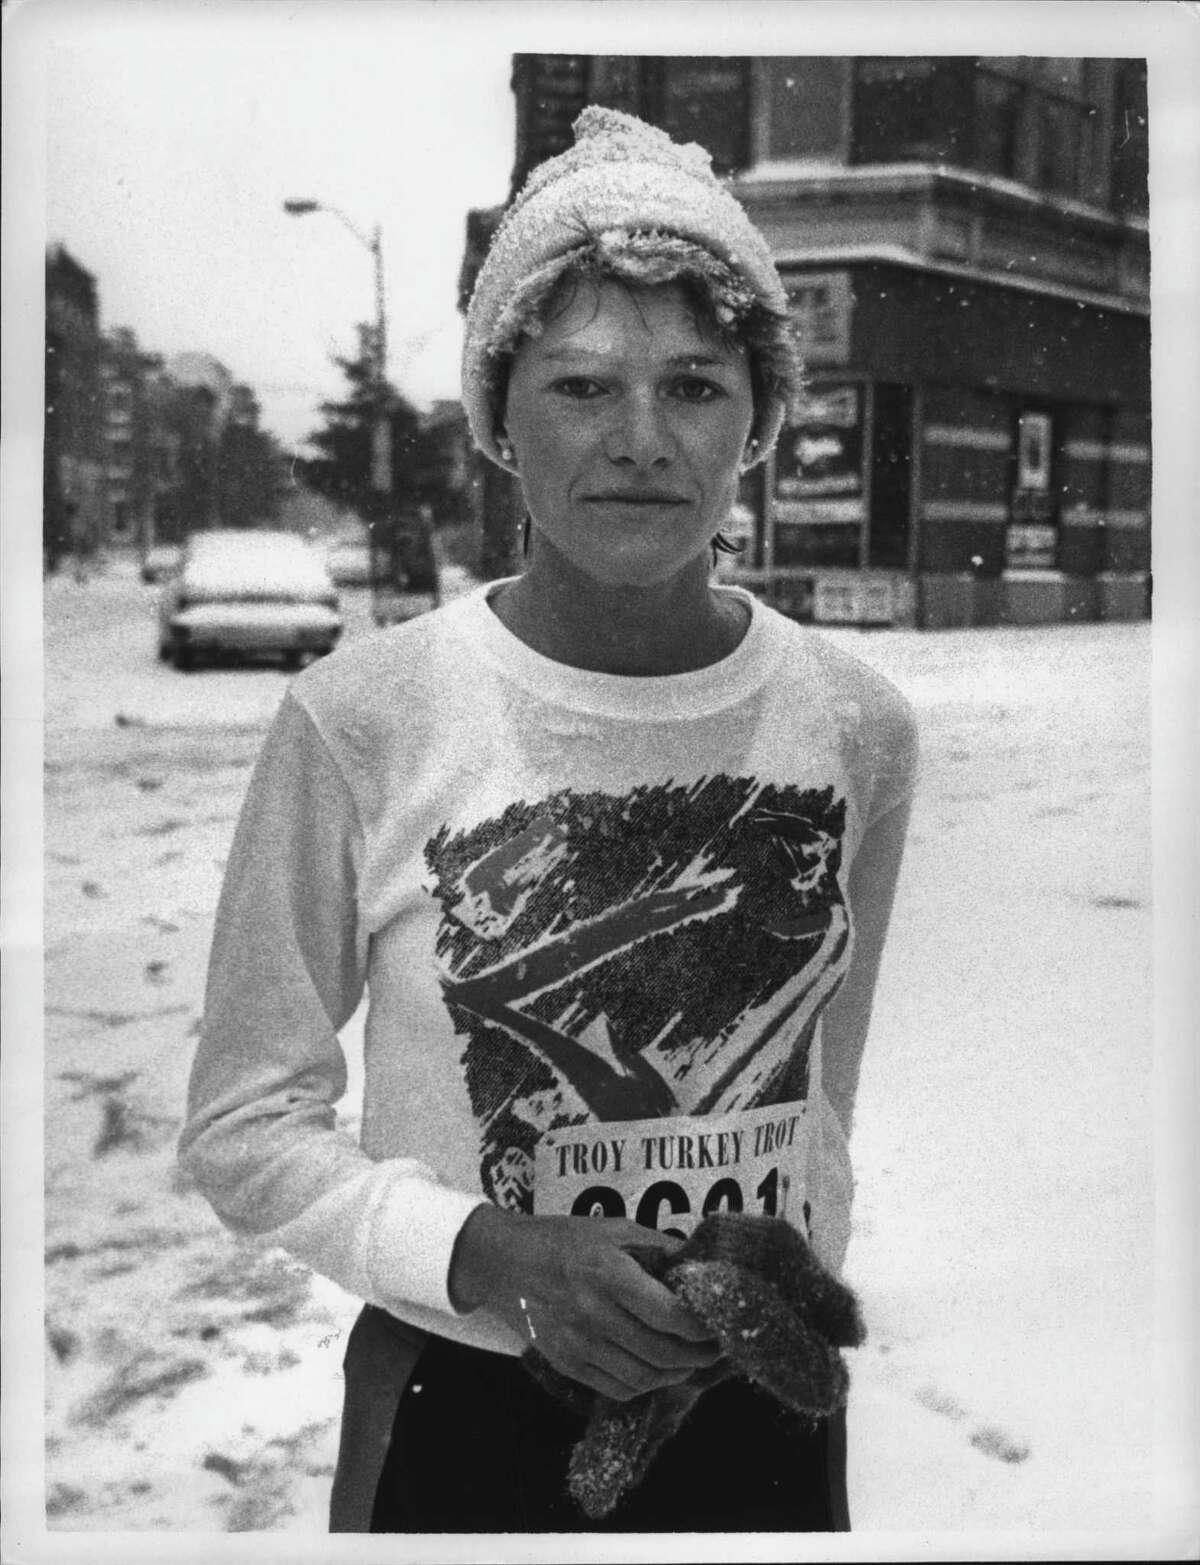 Ellen Weglarz Predmore wins the 10k for the fourth time  in rough weather in 1985. She has eight wins in the 10k and two wins in the 5k. (Paul D. Kniskern Sr./Times Union Archive)